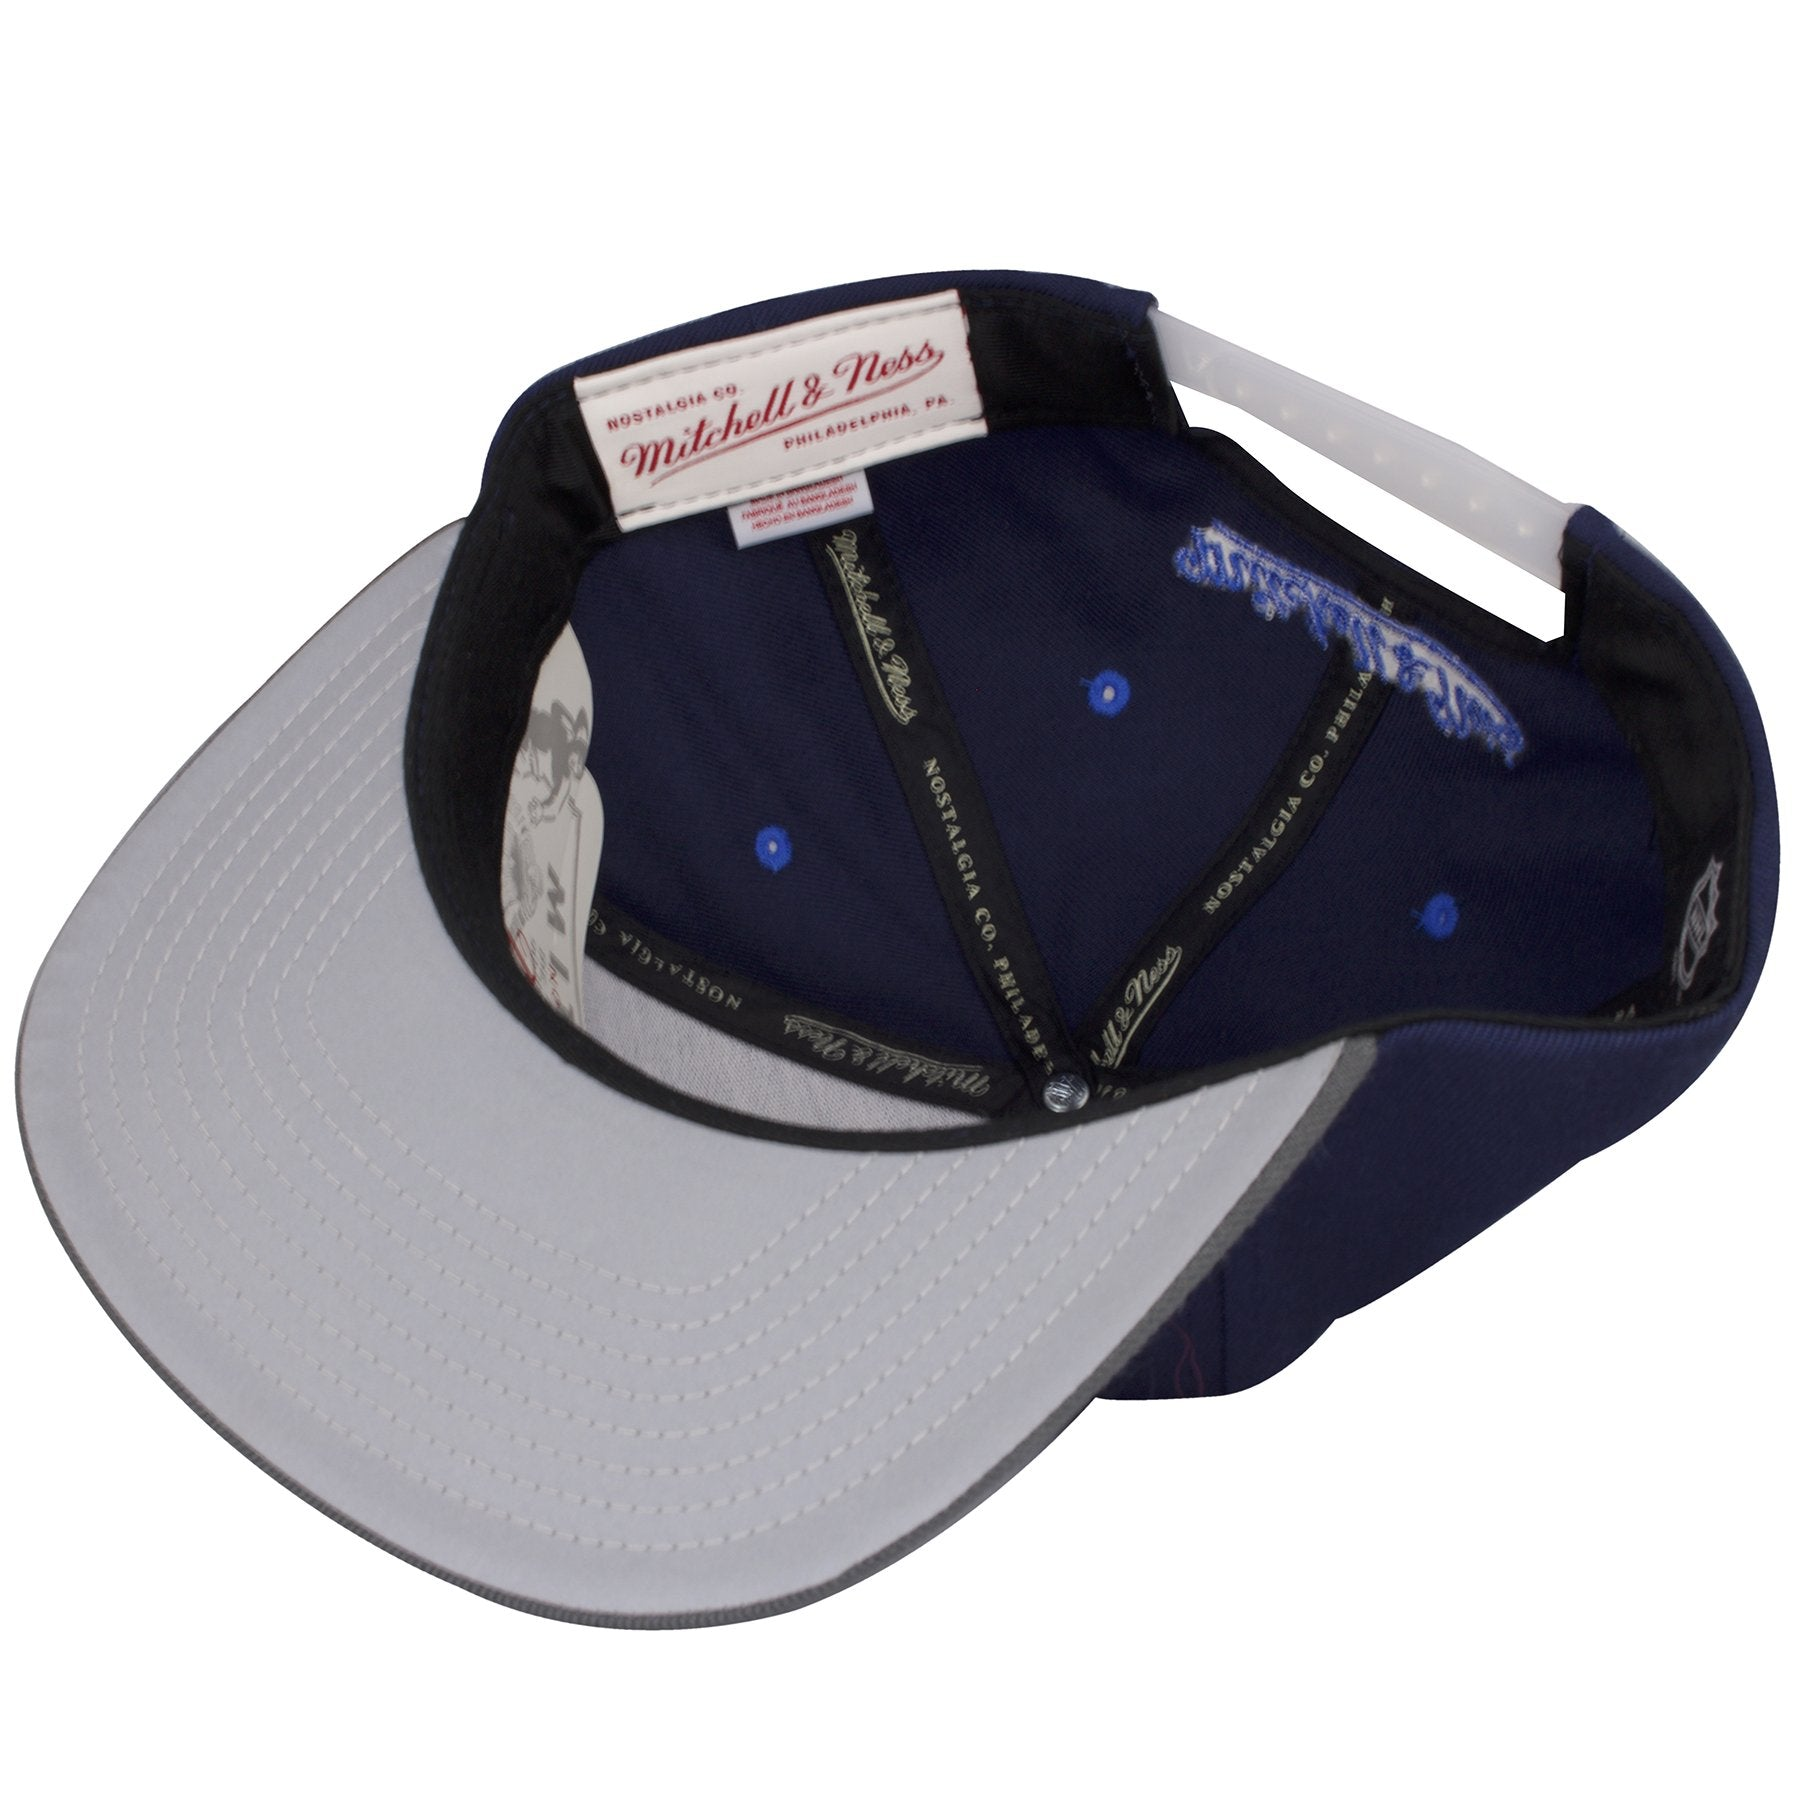 ... hat has the mitchell and ness logo embroidered  the under brim of the winnipeg  jets reflective snapback is a reflective gray 377198a2ebb2